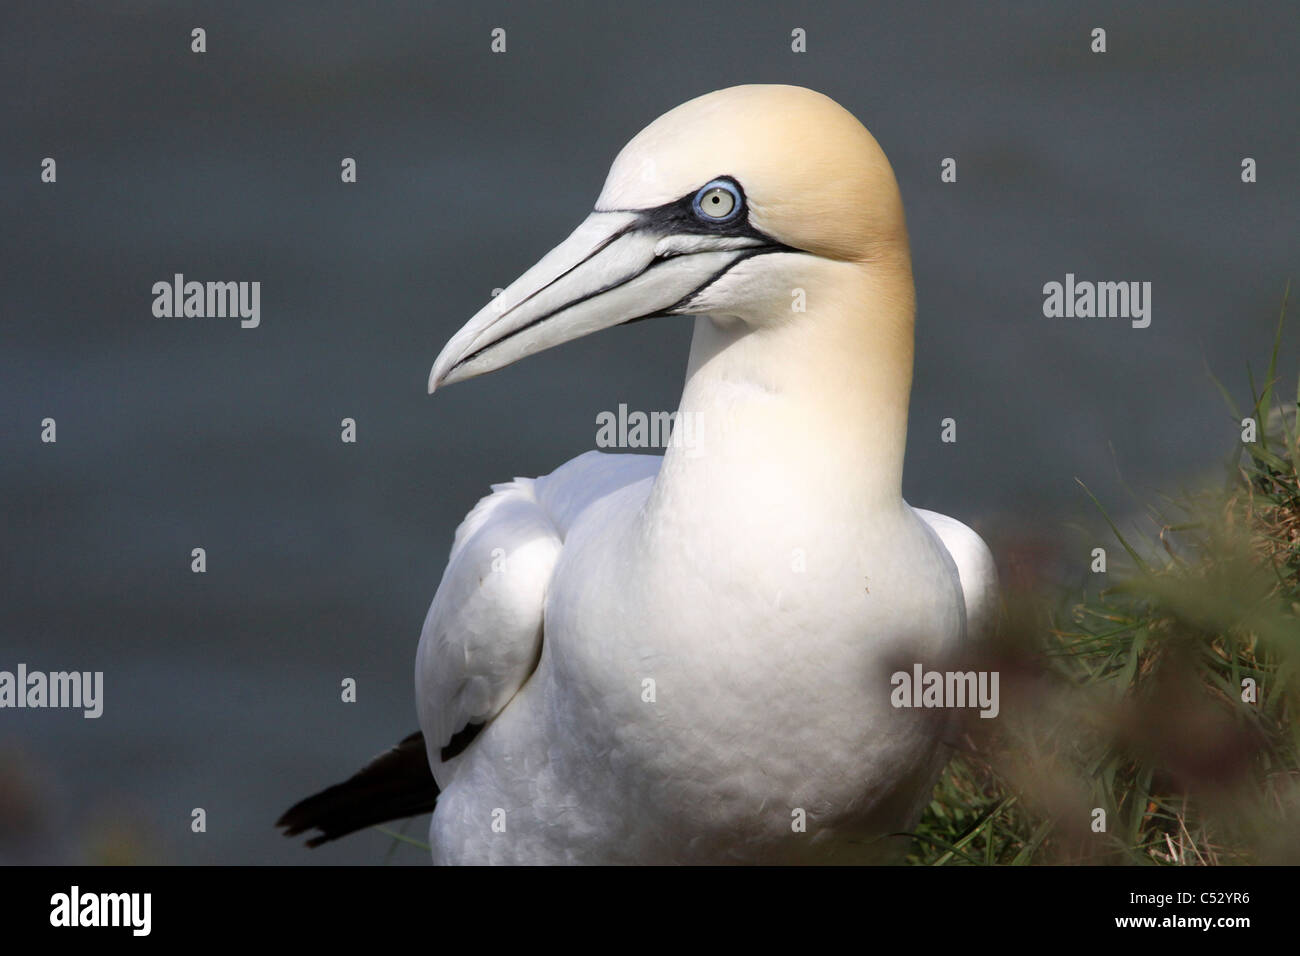 A Northern Gannet Morus bassanus At Bempton Cliffs RSPB Reserve, UK - Stock Image